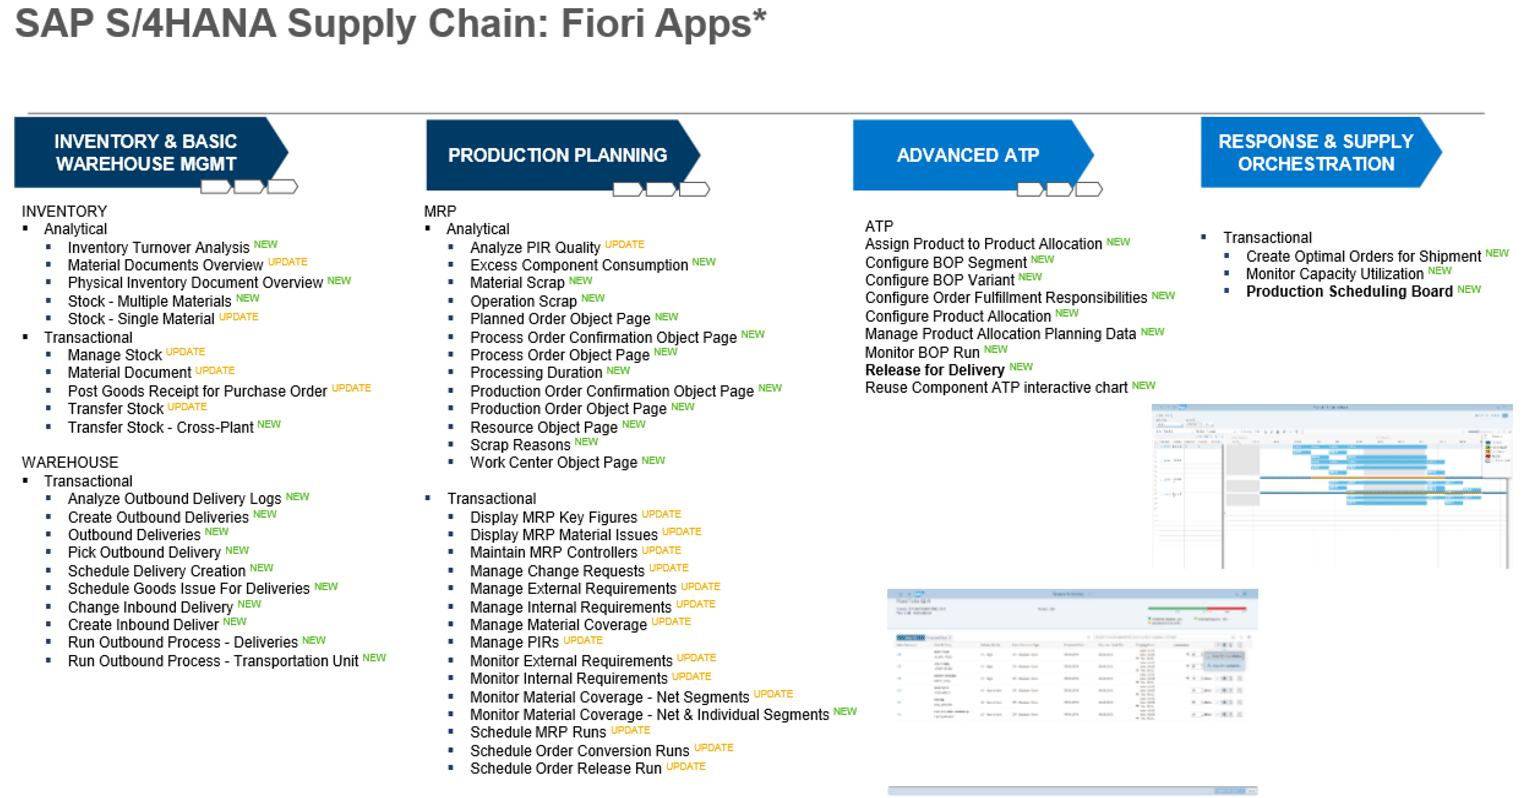 SAP S4HANA Supply Chain Fiori Apps x